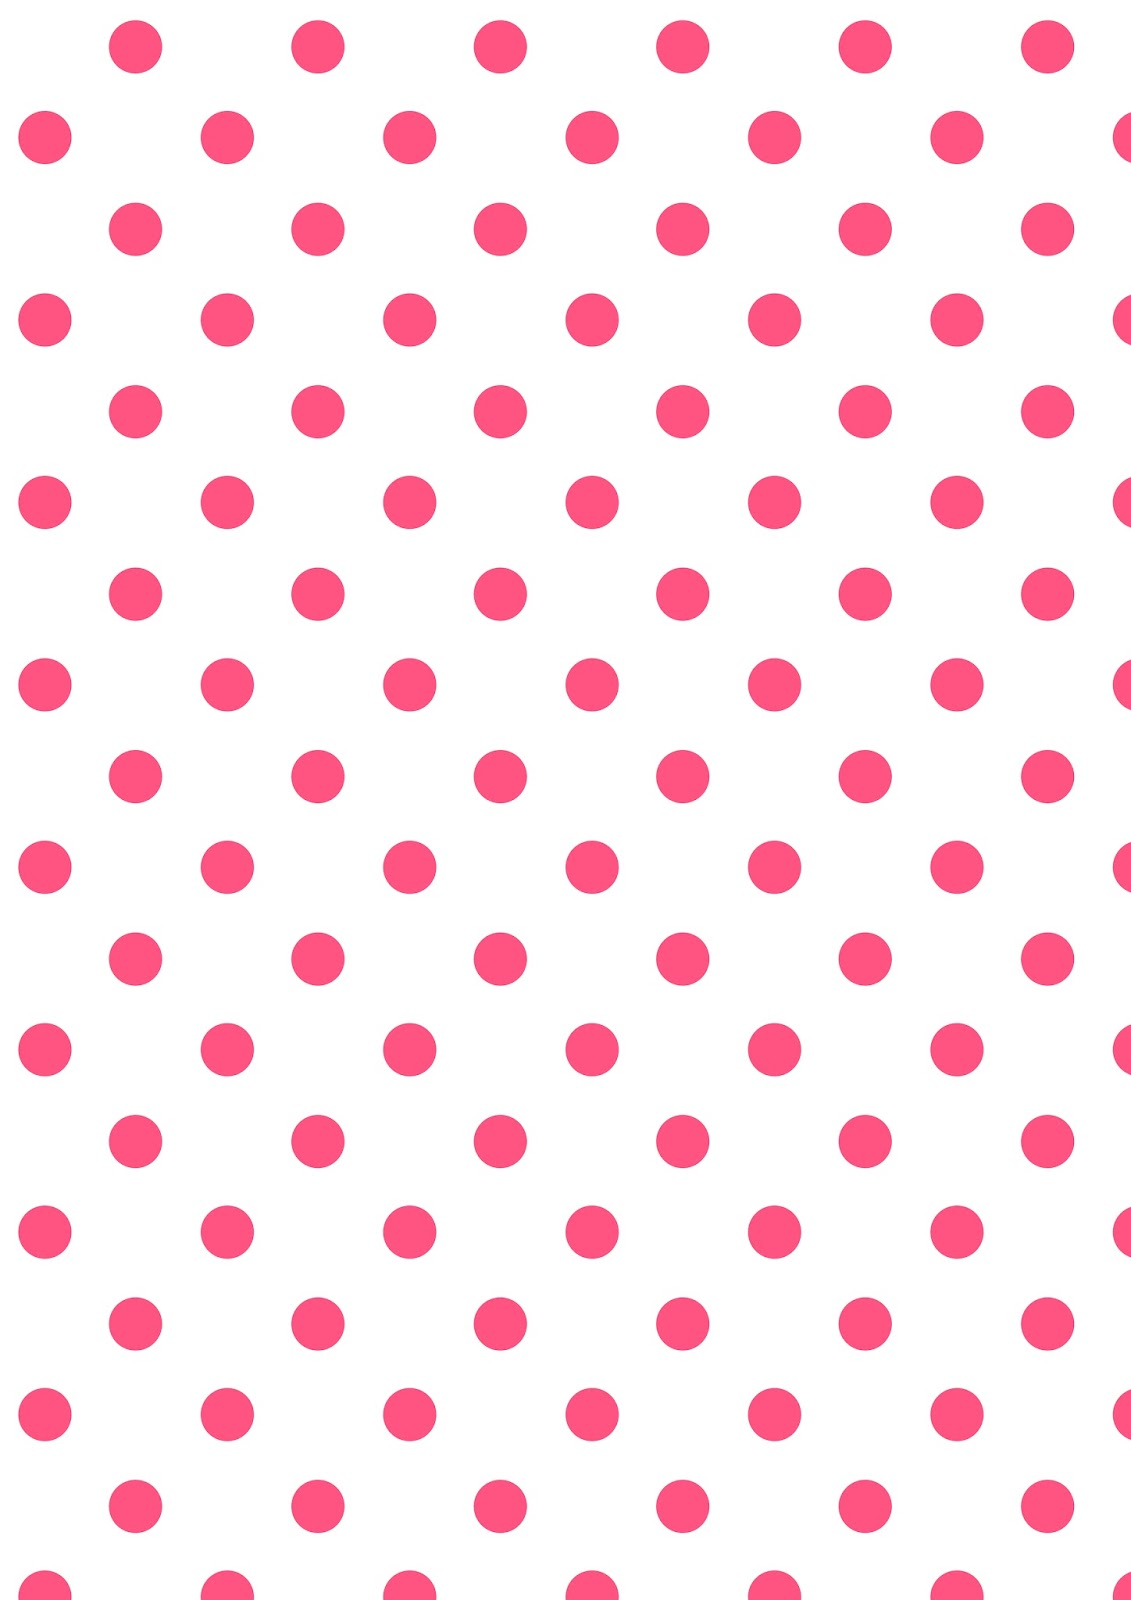 dotted paper Diamond dotted paper from hunan powerwell industrial co, ltd search high quality diamond dotted paper manufacturing and exporting supplier on alibabacom.